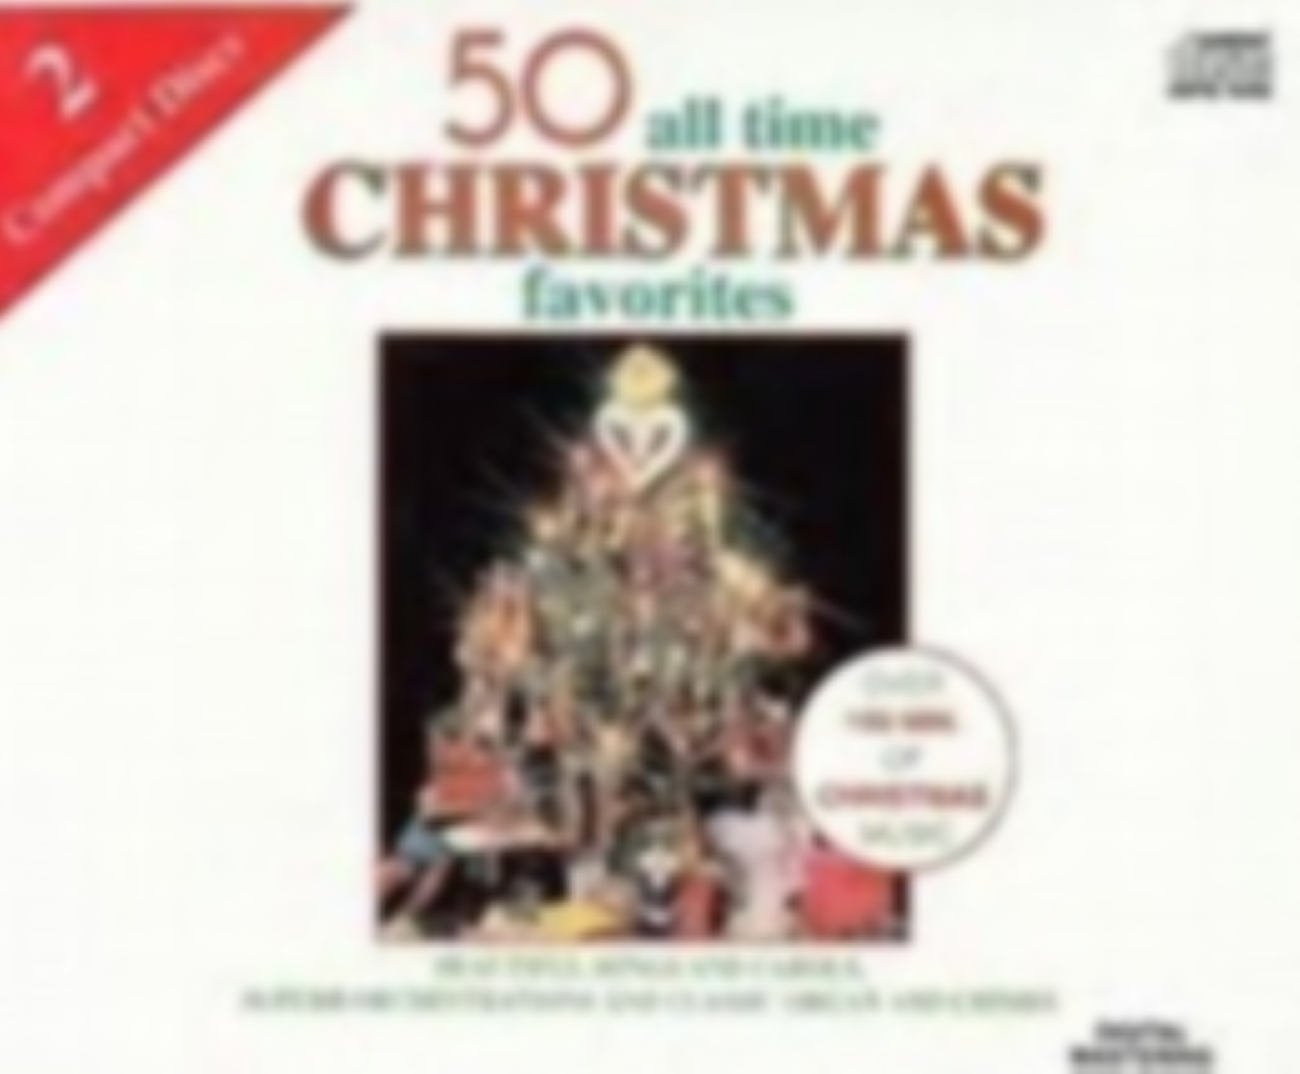 50 All Time Christmas Favorites Cd